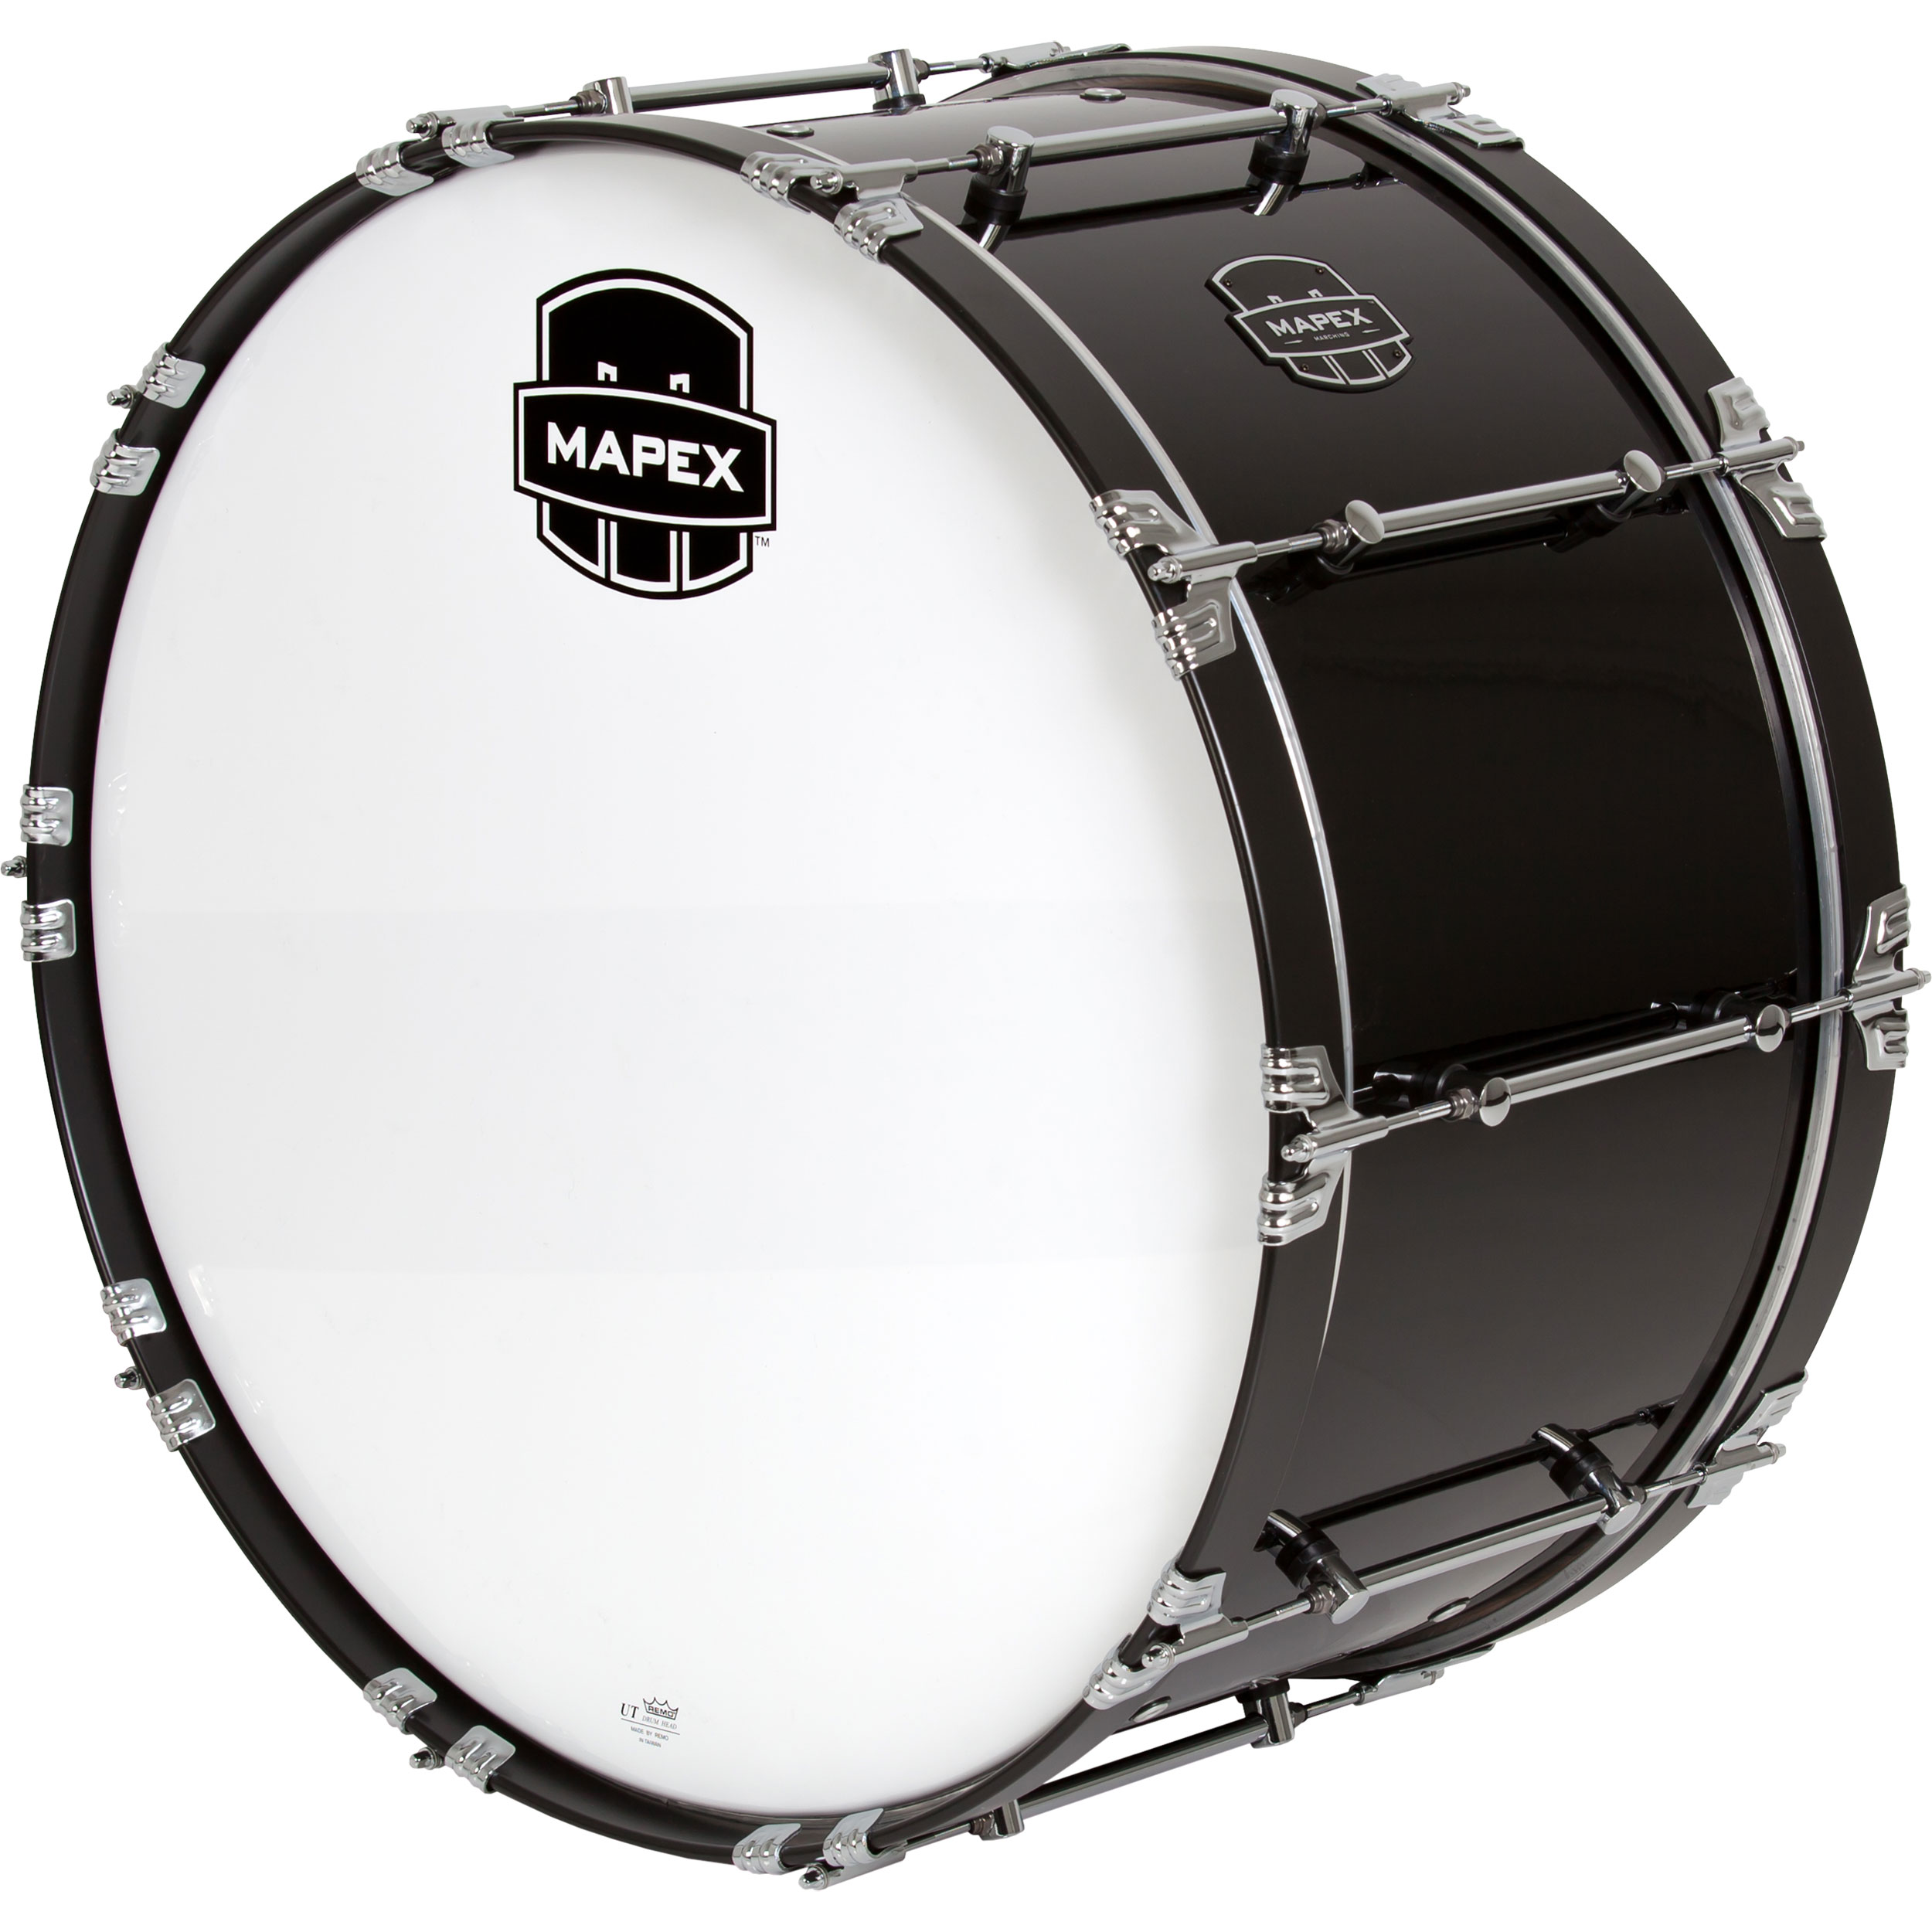 "Mapex 26"" x 14"" Quantum Mark II Marching Bass Drum in Gloss Black"